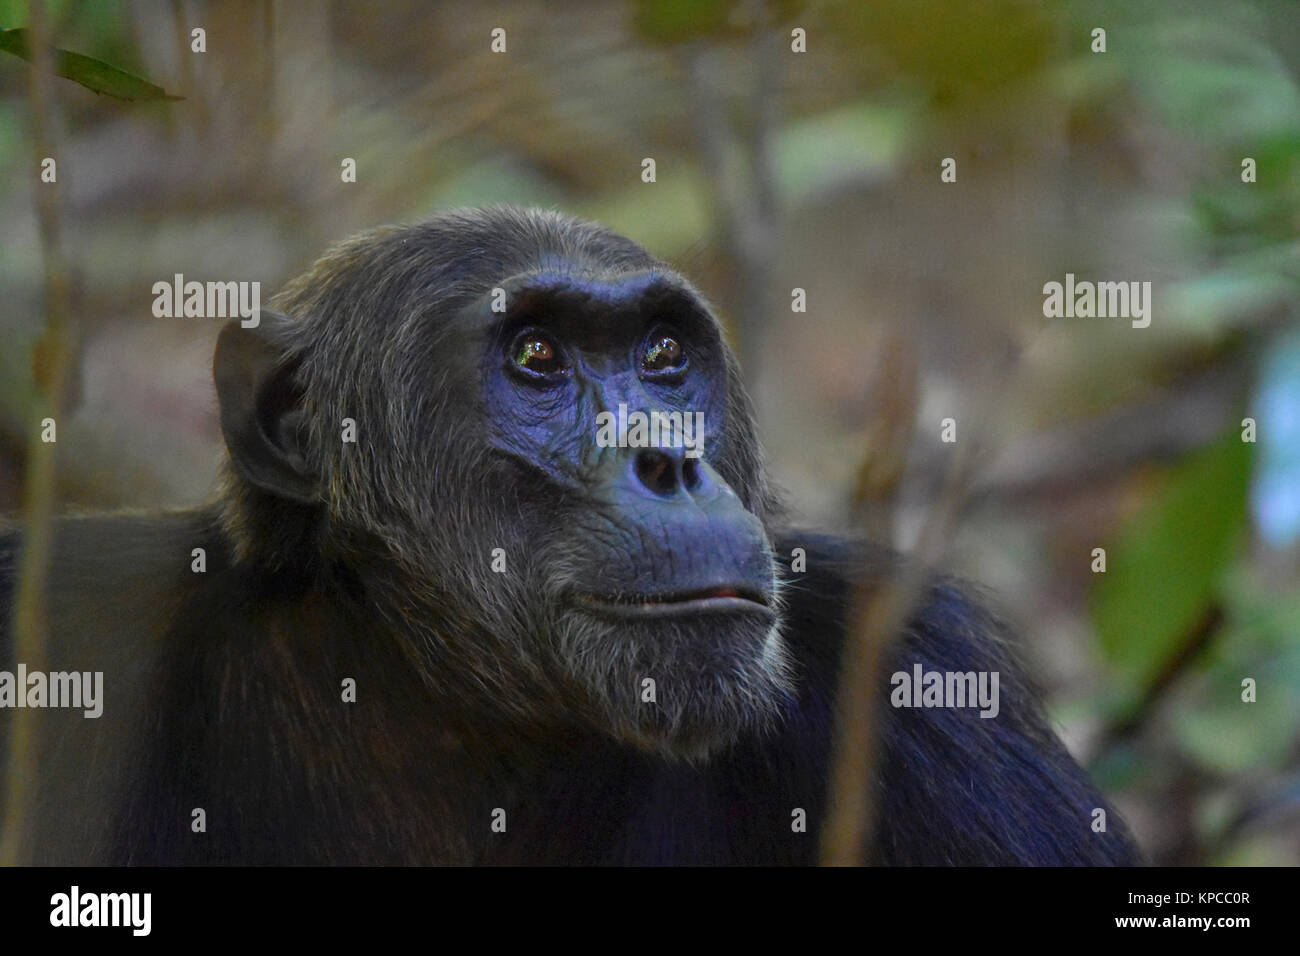 Chimpanzee in Bugondo forest, Murchison Falls National Park. - Stock Image